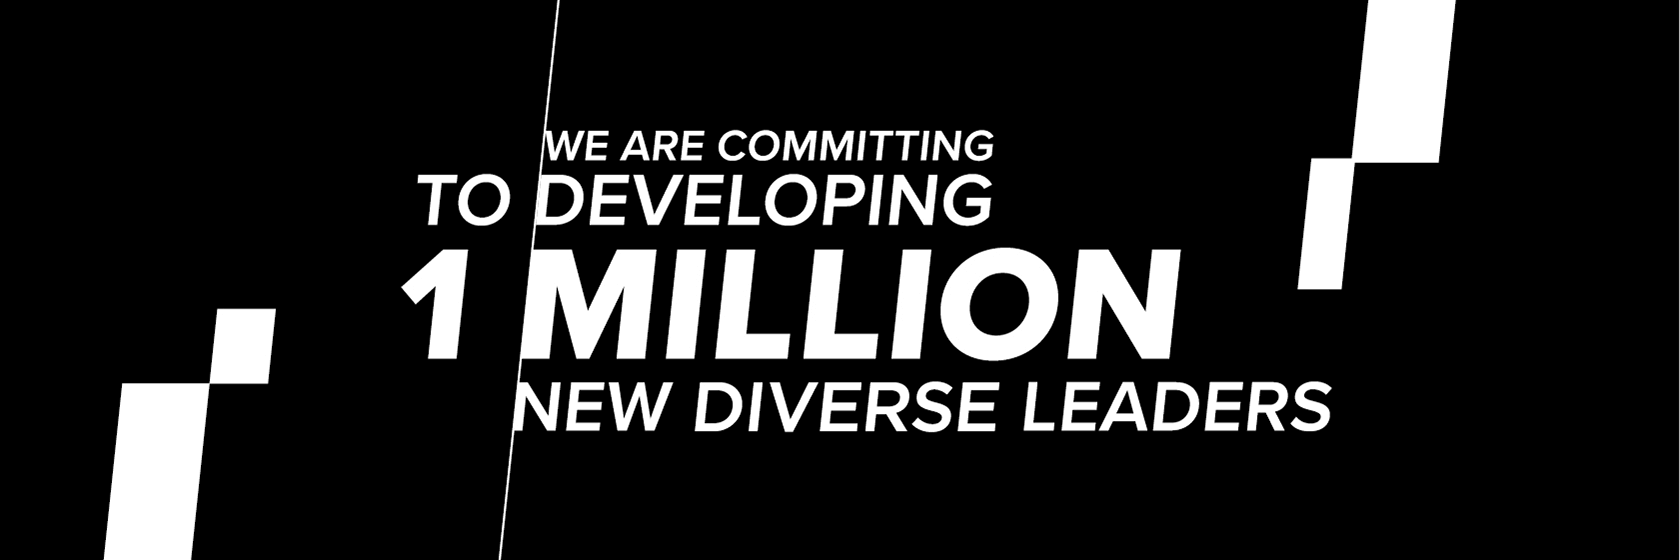 we are committing to developing 1 million new leaders in the next five years